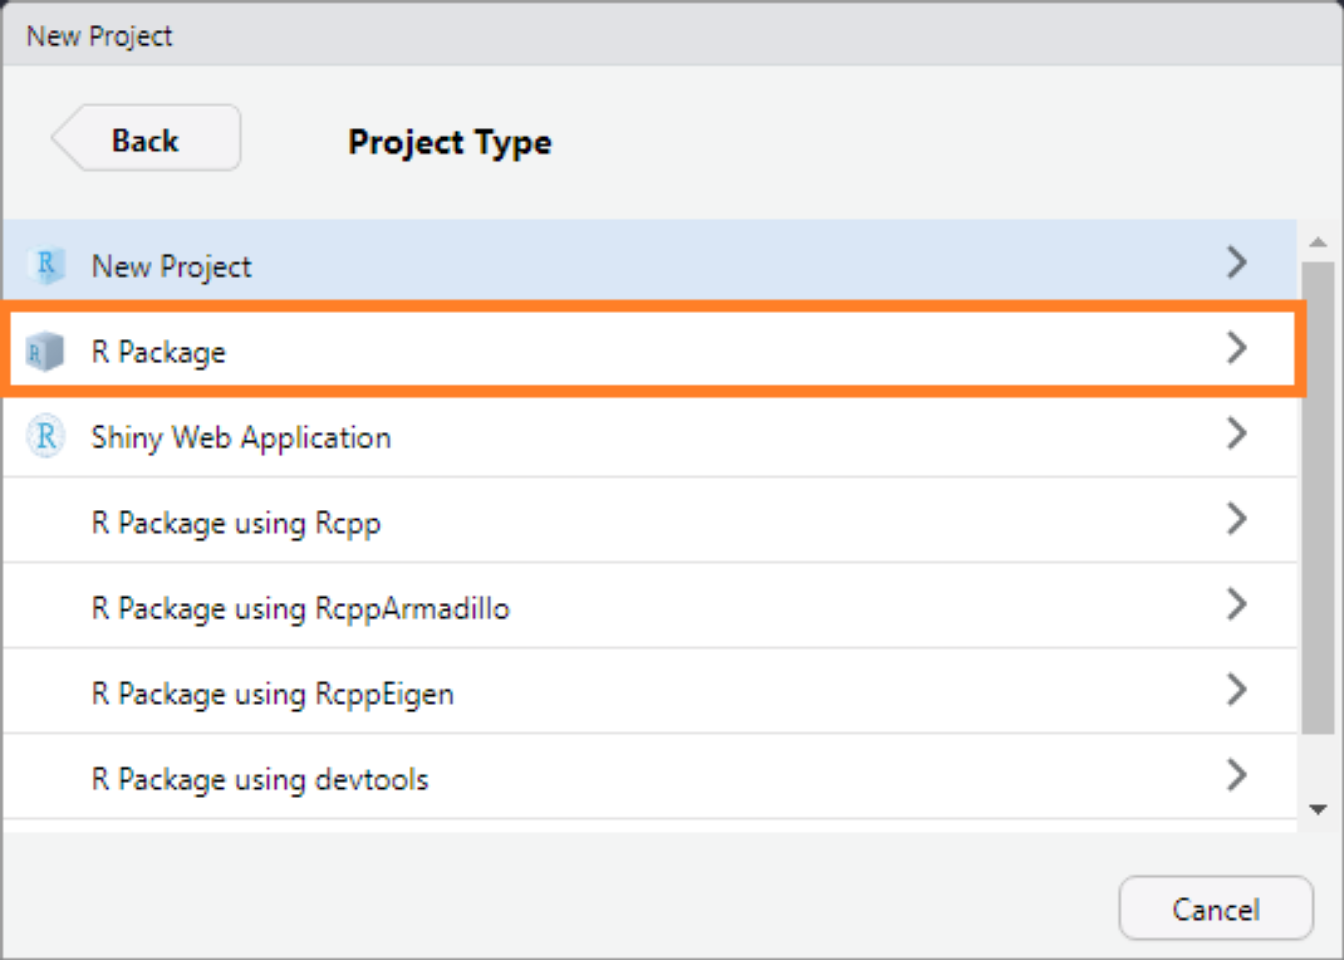 The RStudio New Project-New Directory interface.